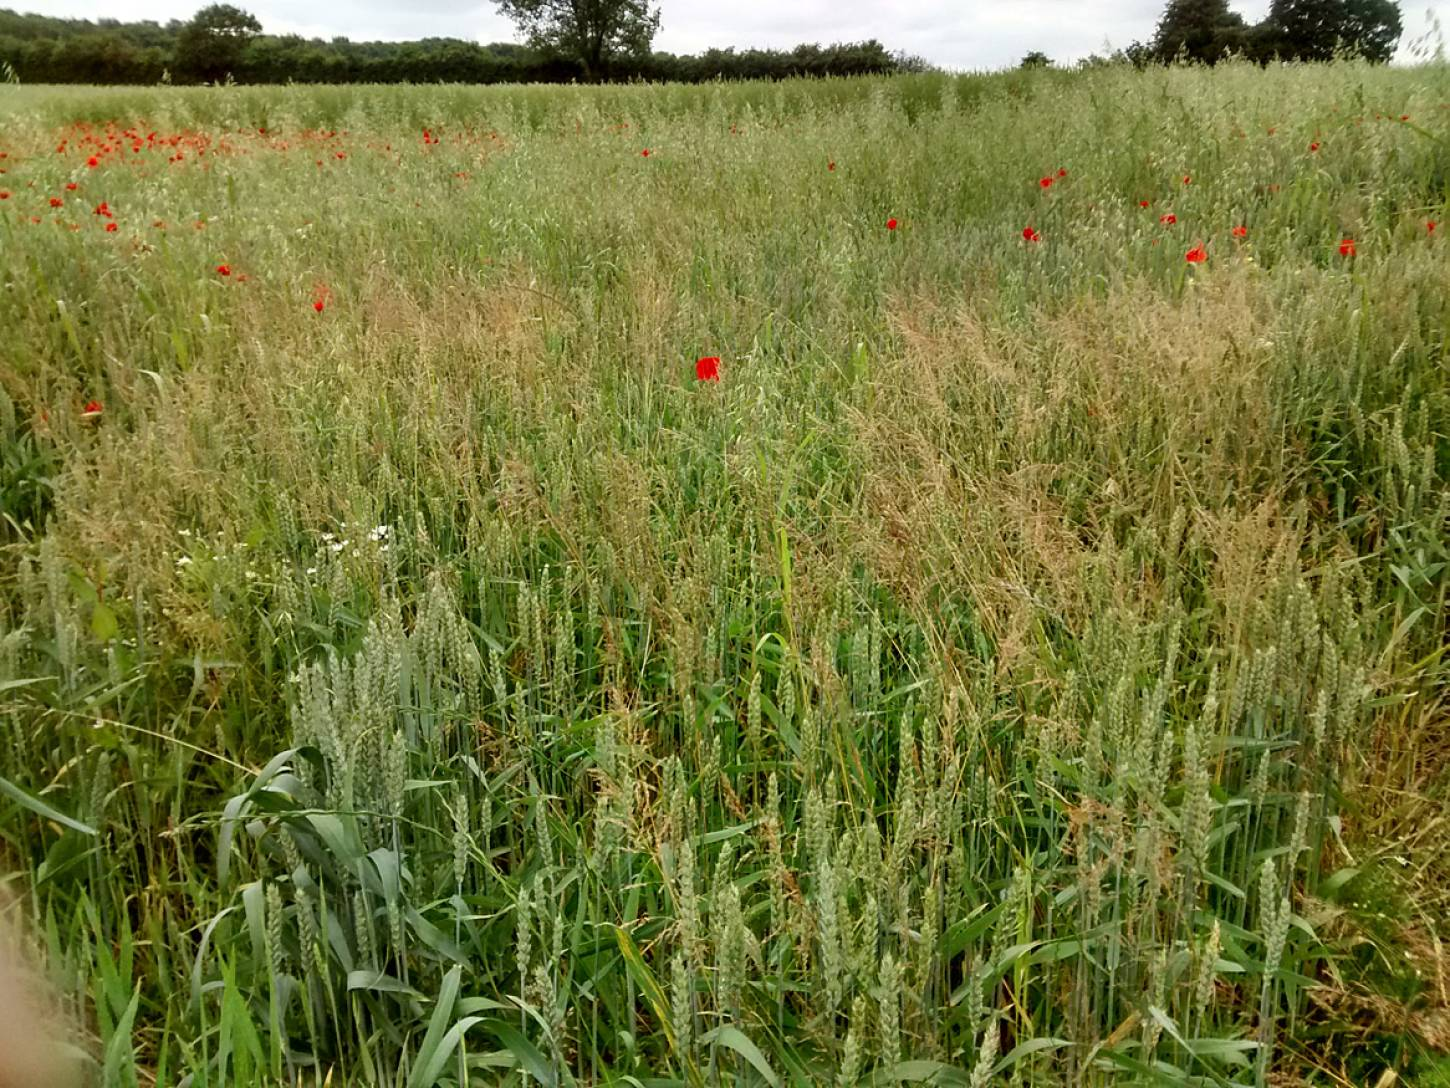 Perry Court biodynamic Farm review - modern Nelson wheat overgrown - 3:50pm&nbsp;23<sup>rd</sup>&nbsp;Jun.&nbsp;'15  <a href='http://maps.google.com/?t=h&q=51.248375,1.002344&z=15' target=_blank><img src='http://www.brockwell-bake.org.uk/img/marker.png' style='border:none;vertical-align:top' height=16px></a>